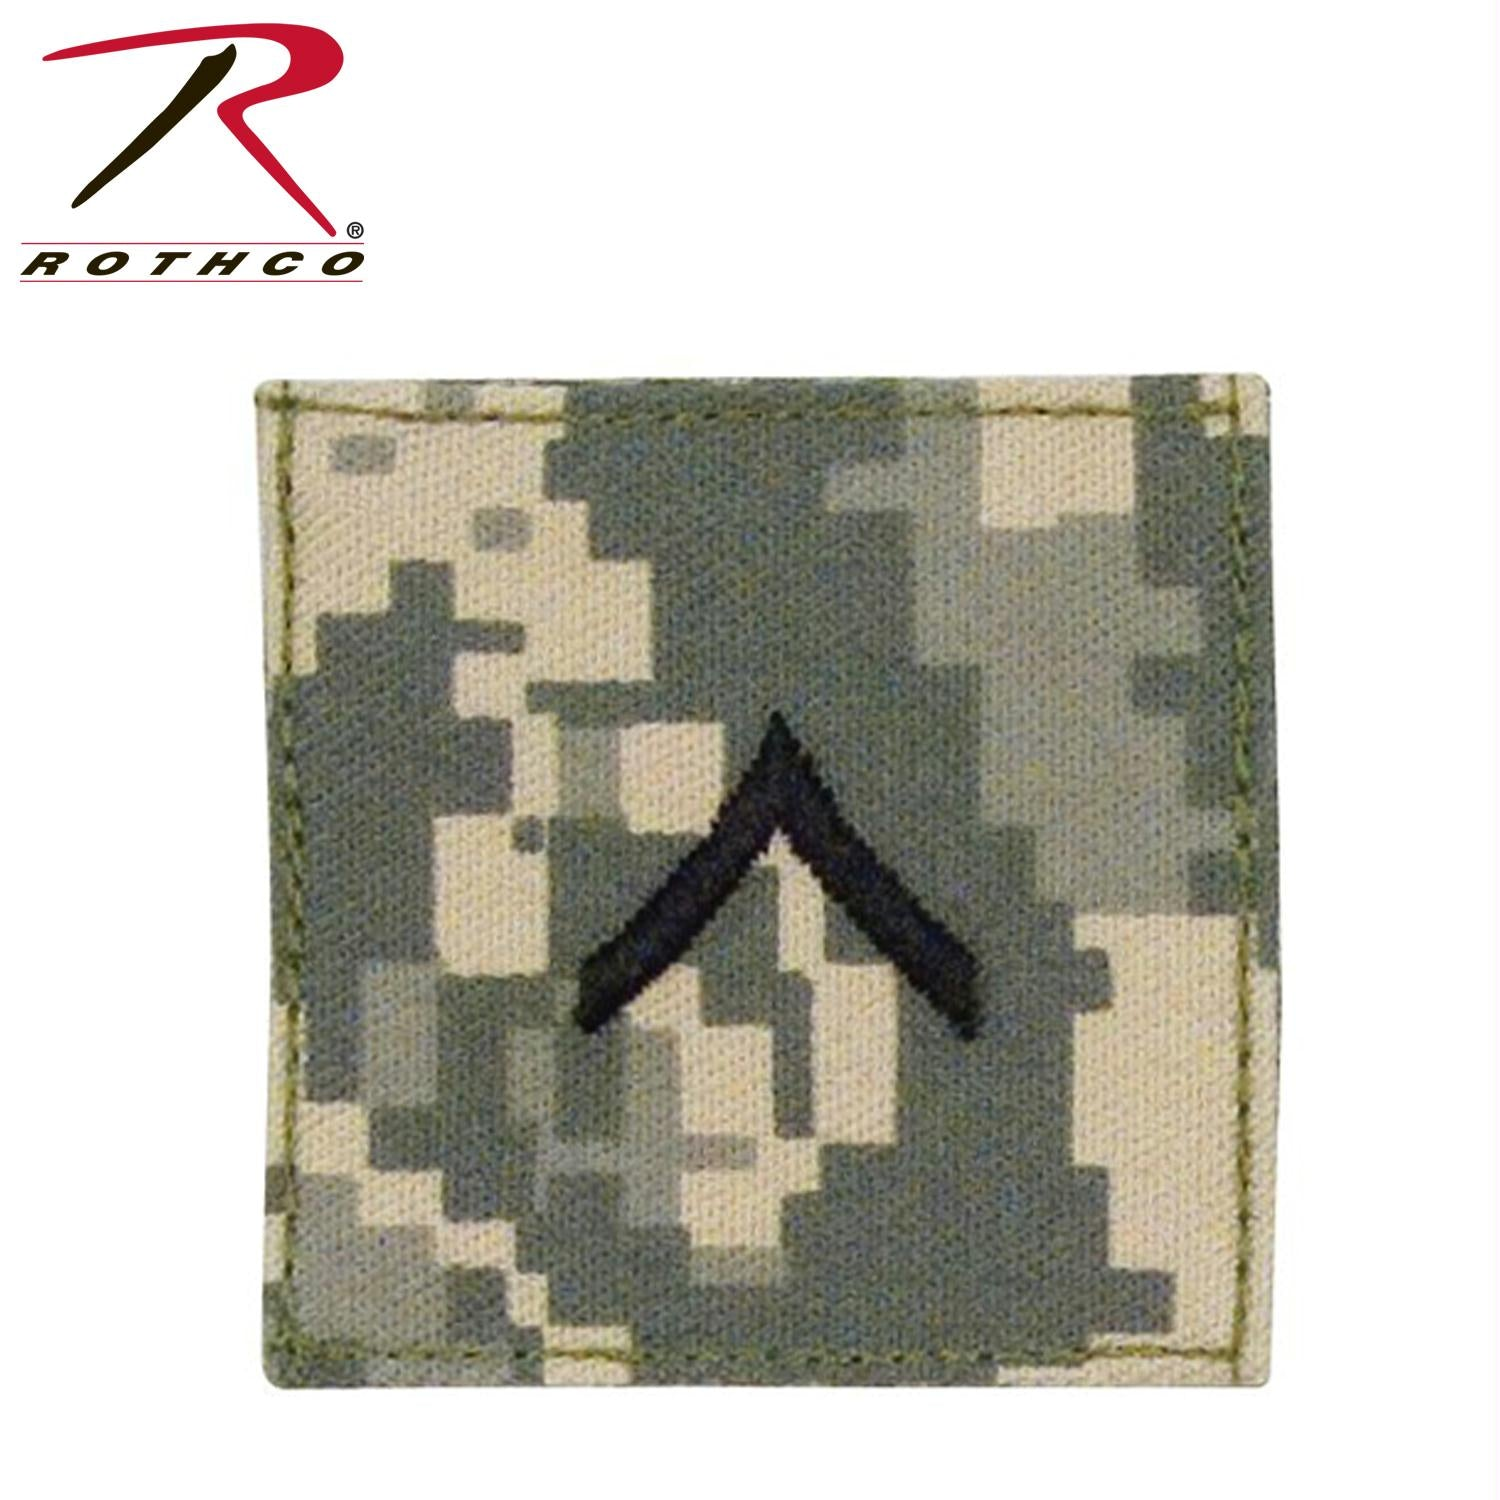 Rothco Official U.S. Made Embroidered Rank Insignia - Private - ACU Digital Camo